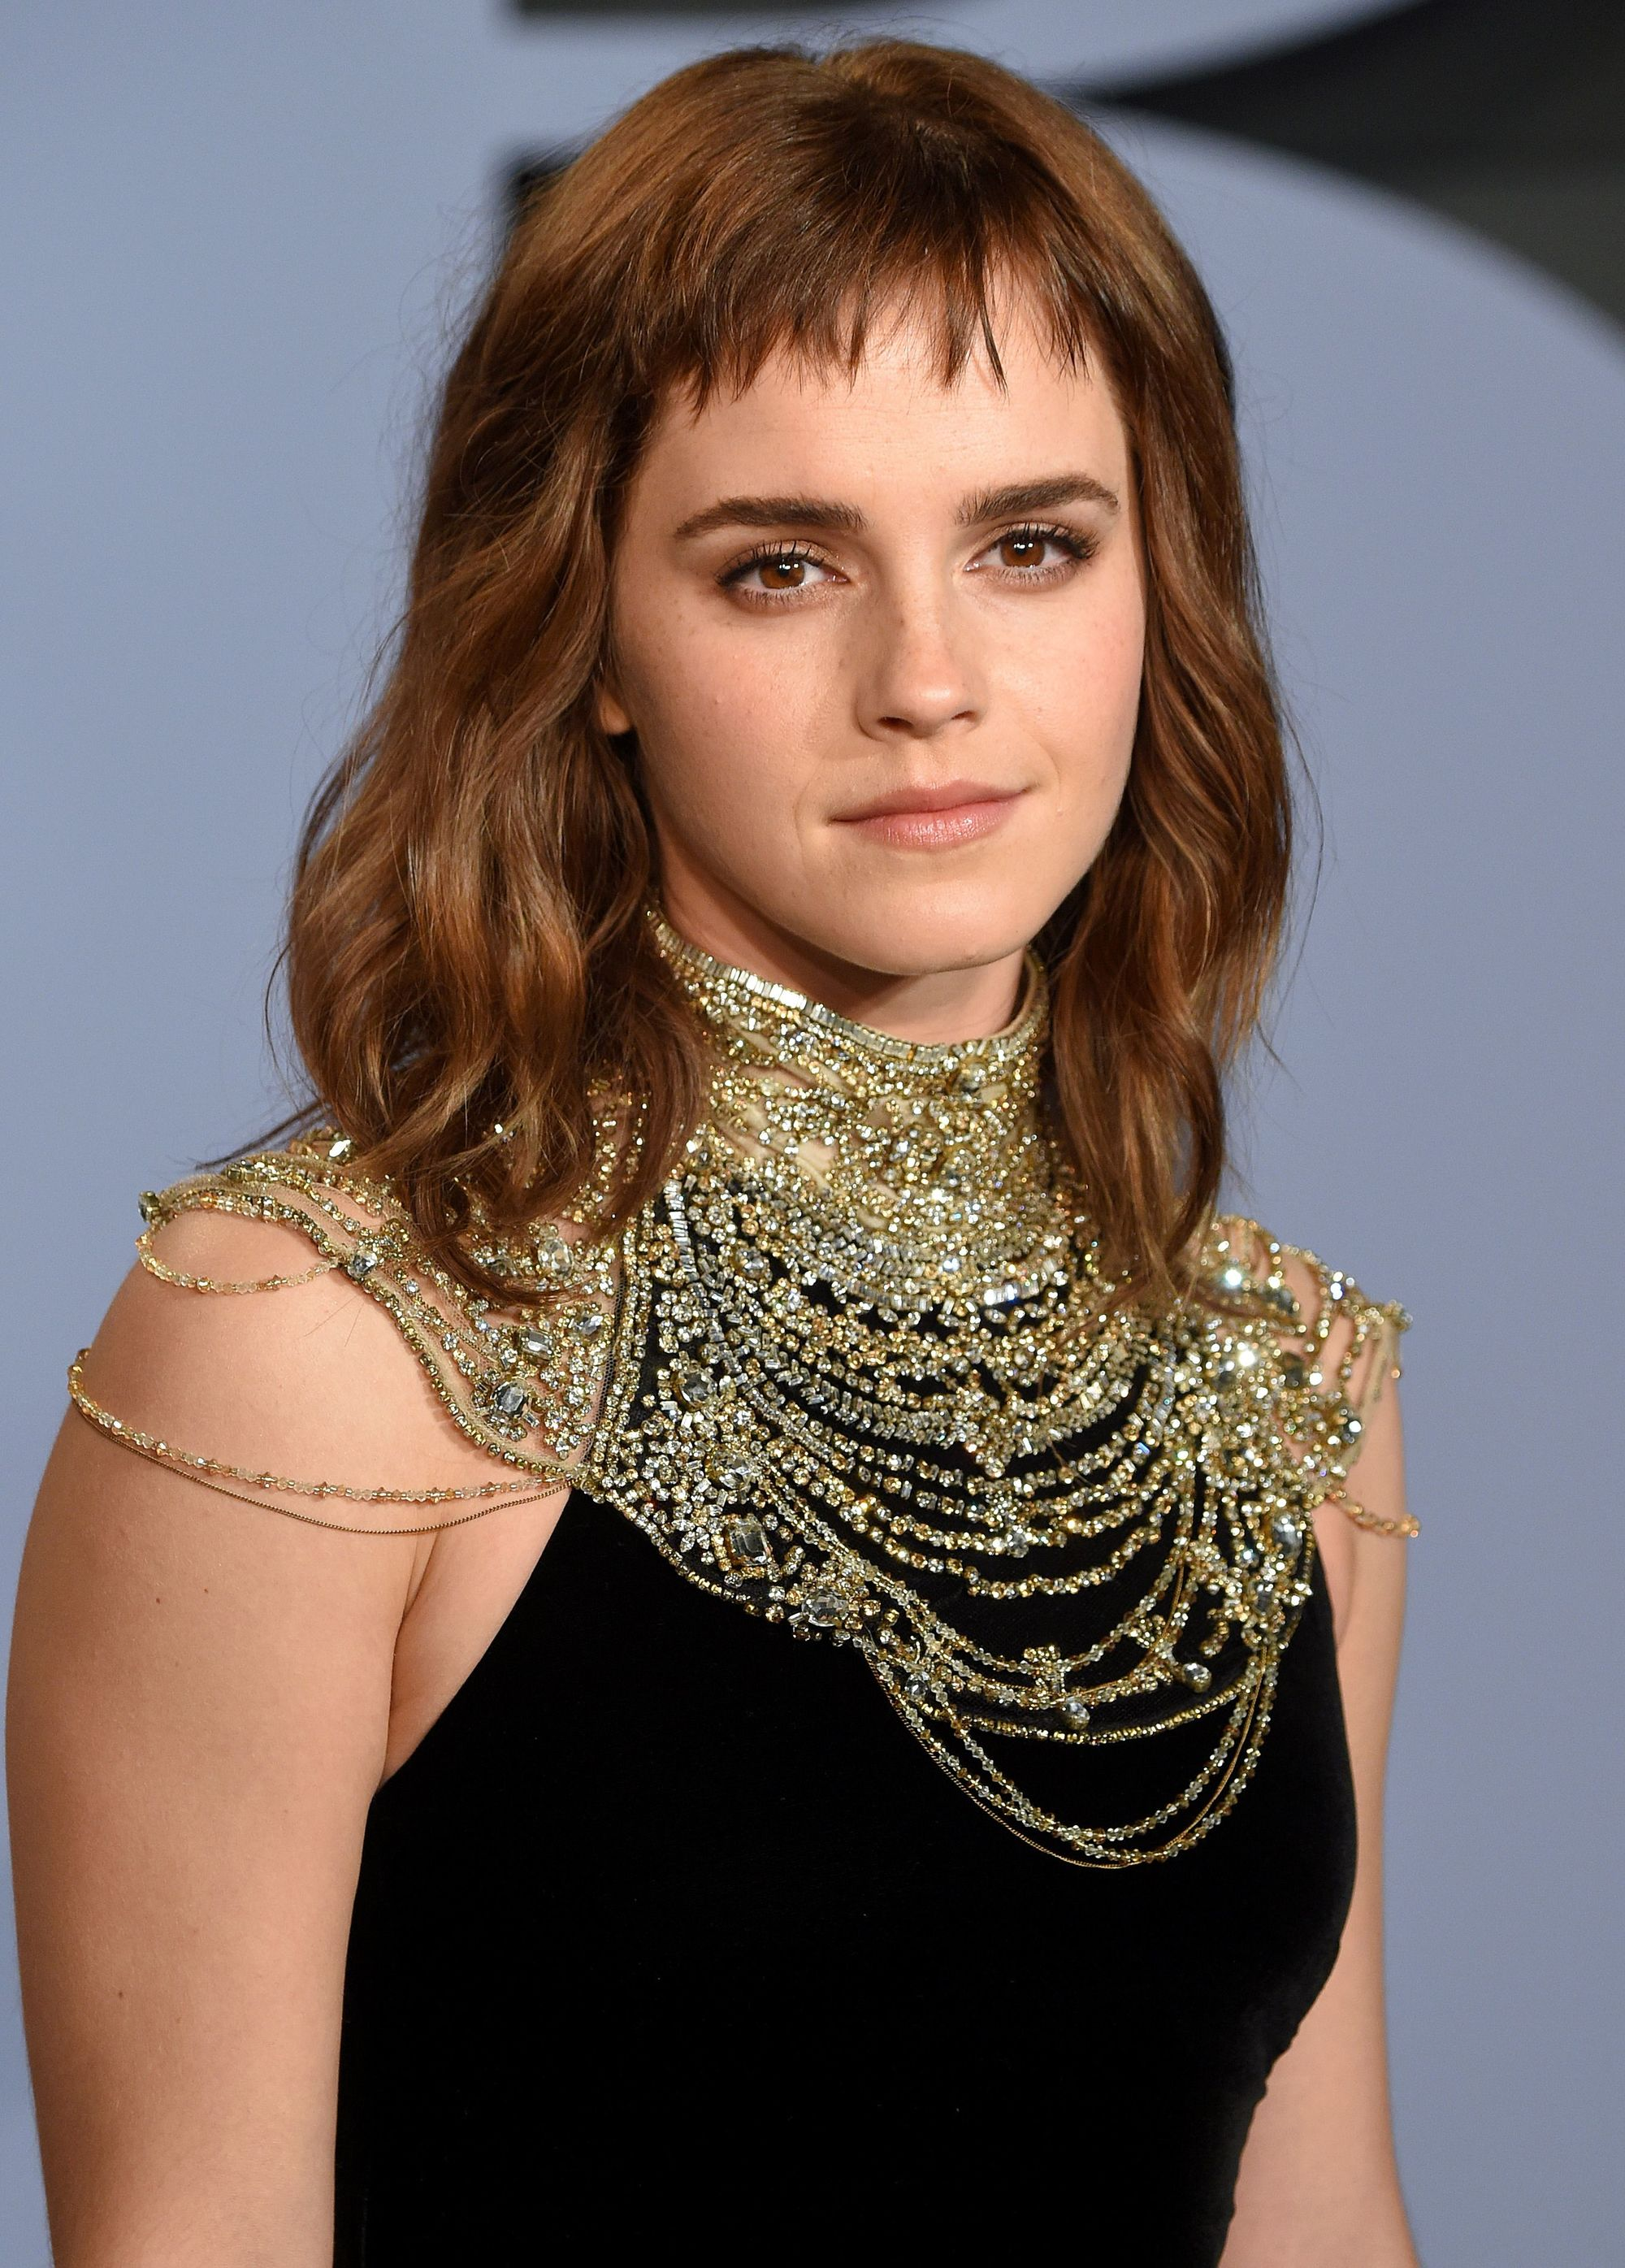 choppy bob: emma watson with shoulder length brown hair with choppy bangs